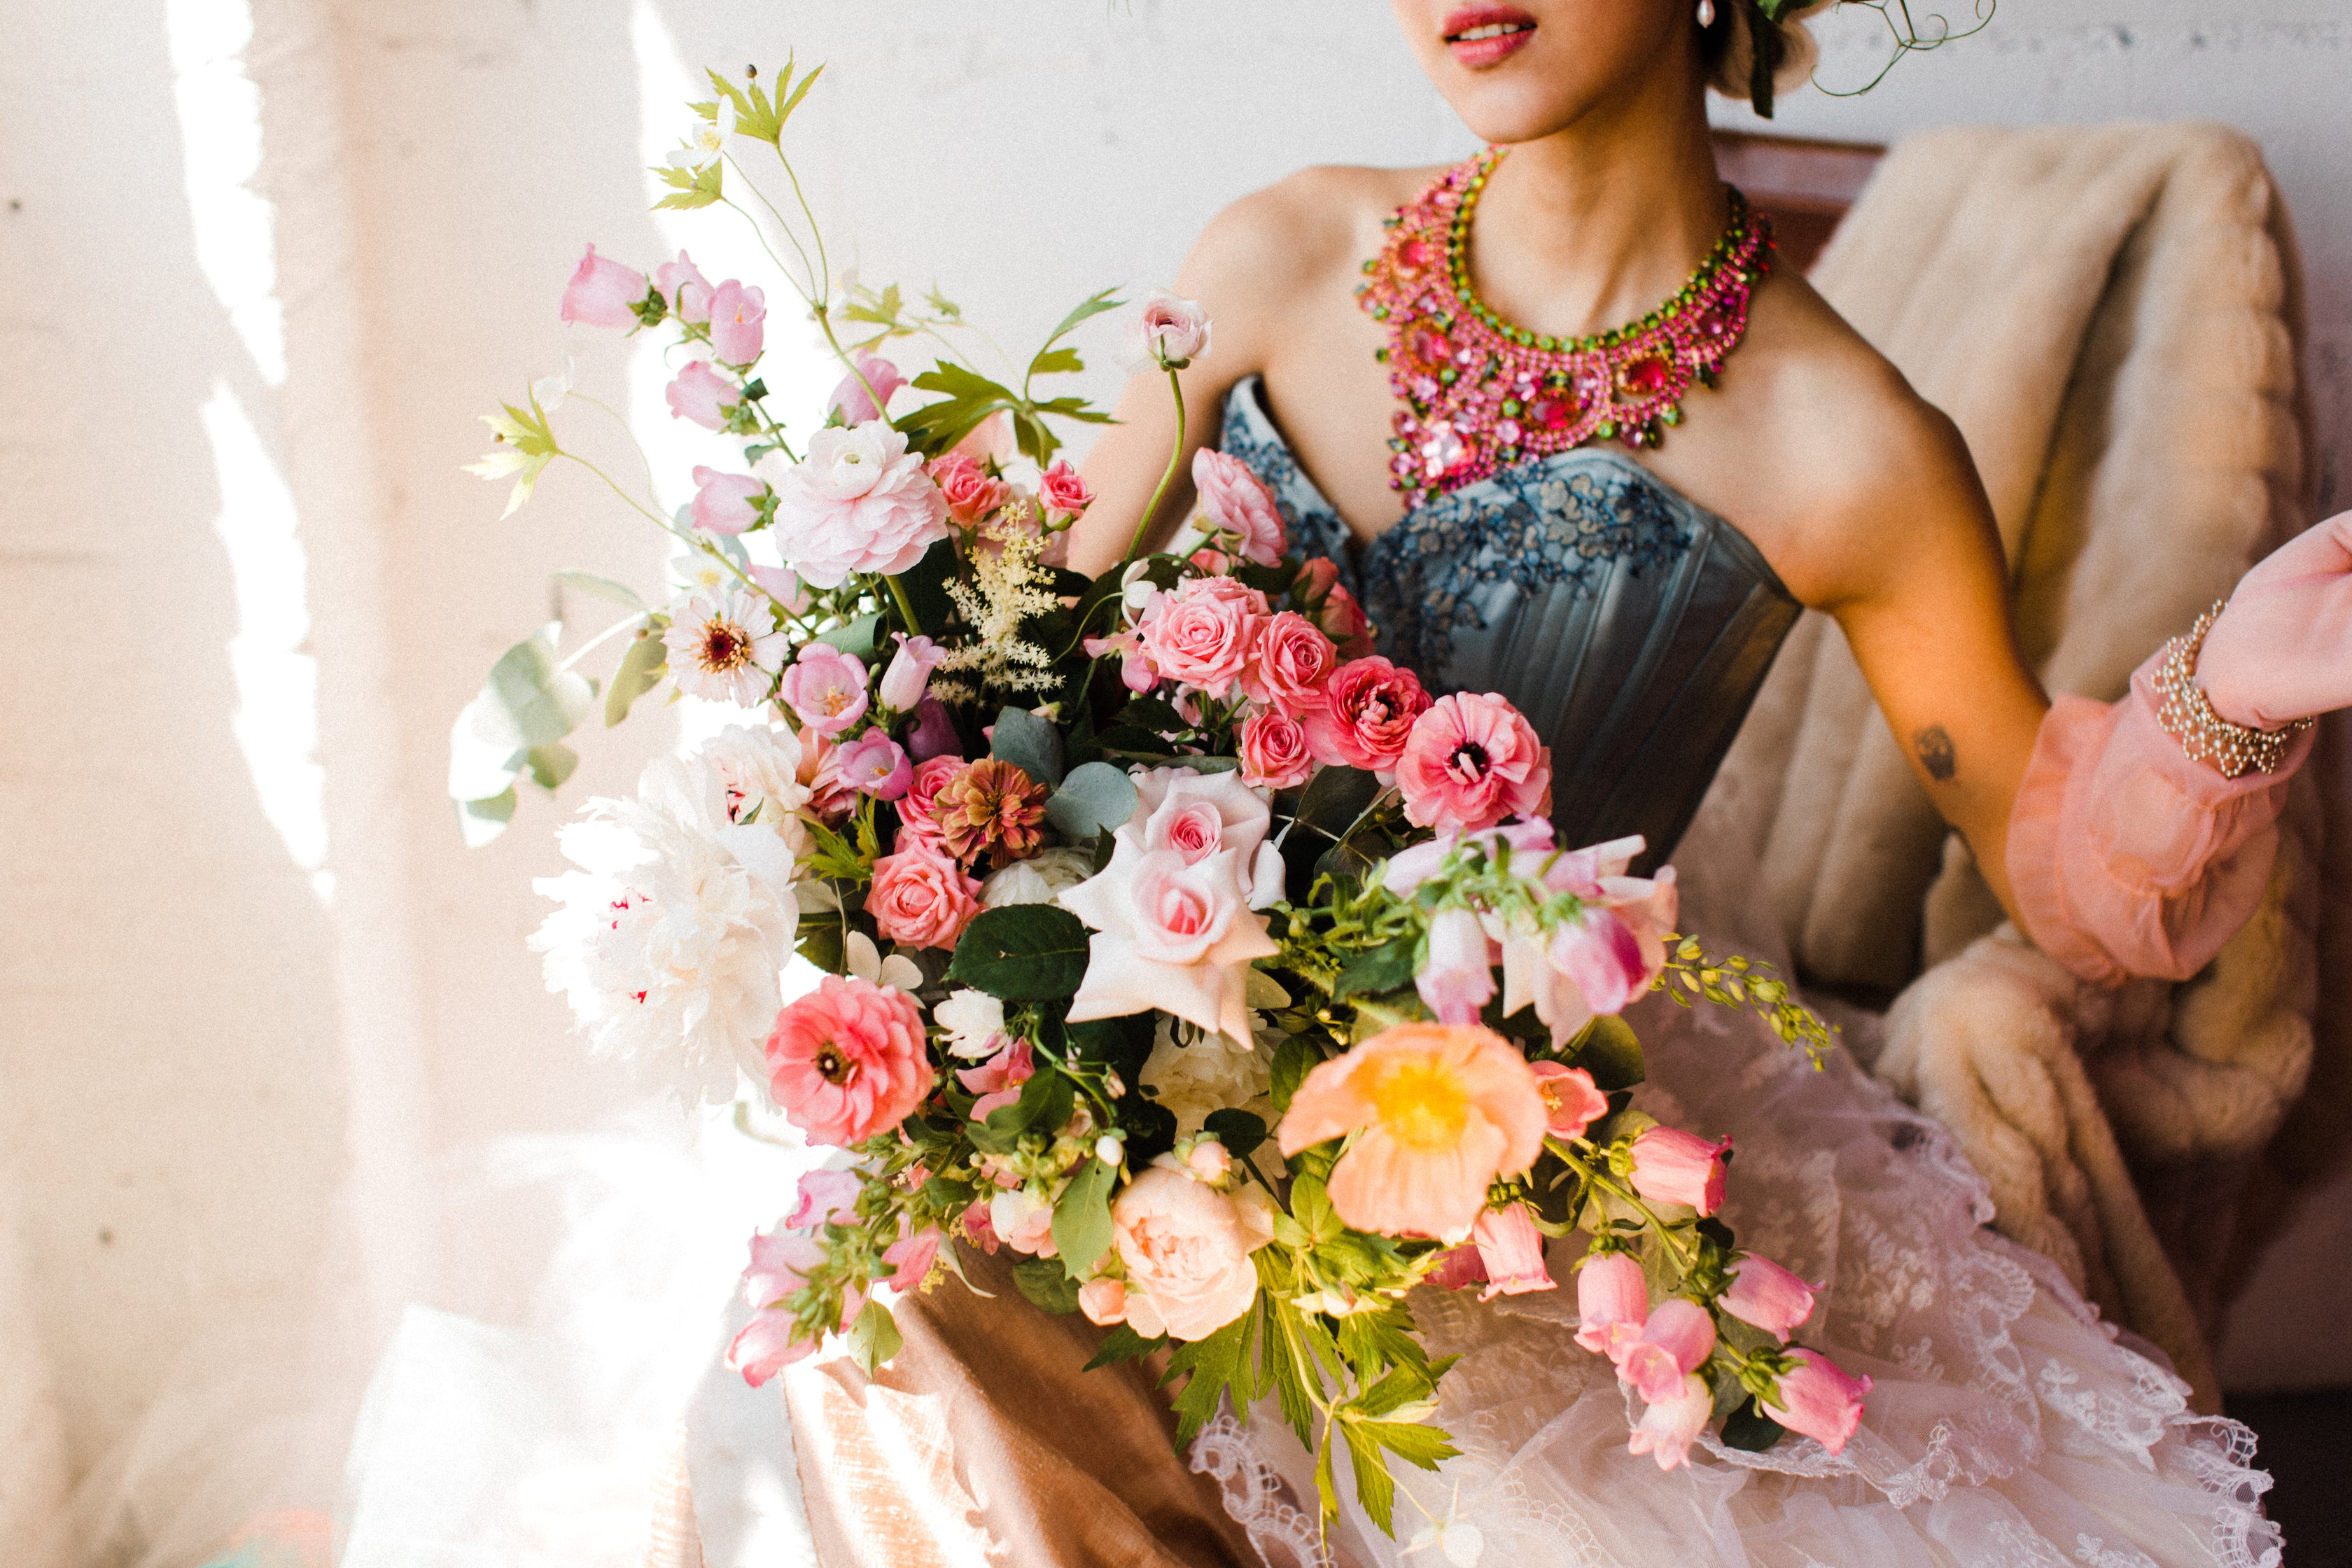 Toronto Florist - Free Delivery - Send Flowers